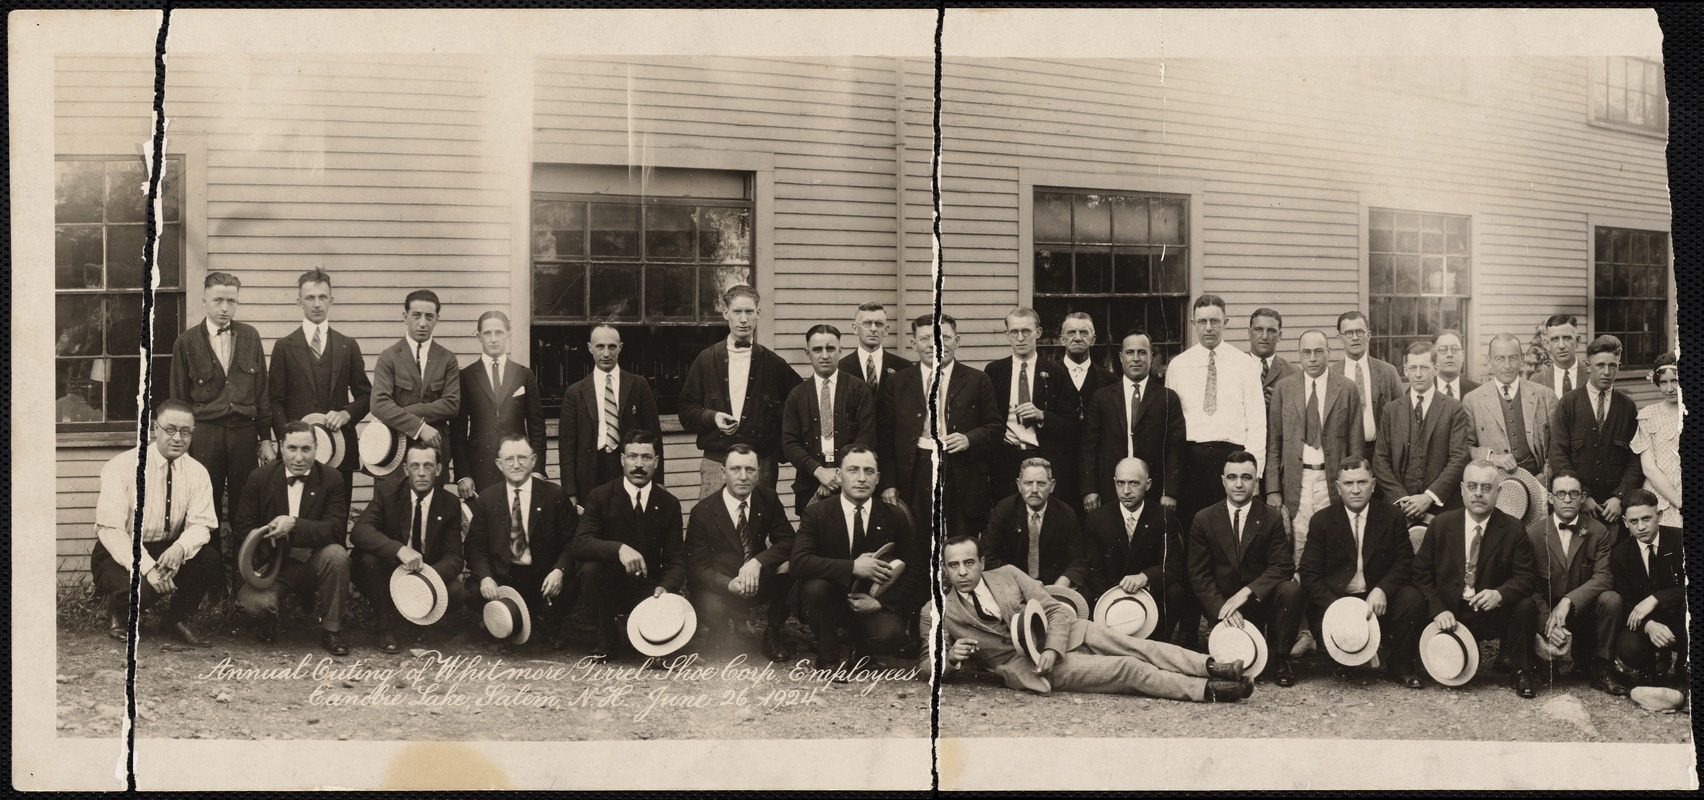 Annual outing of Whitmore Tirrel Shoe Corp., employees. Canobie Lake, Salem, N.H. June 26, 1924